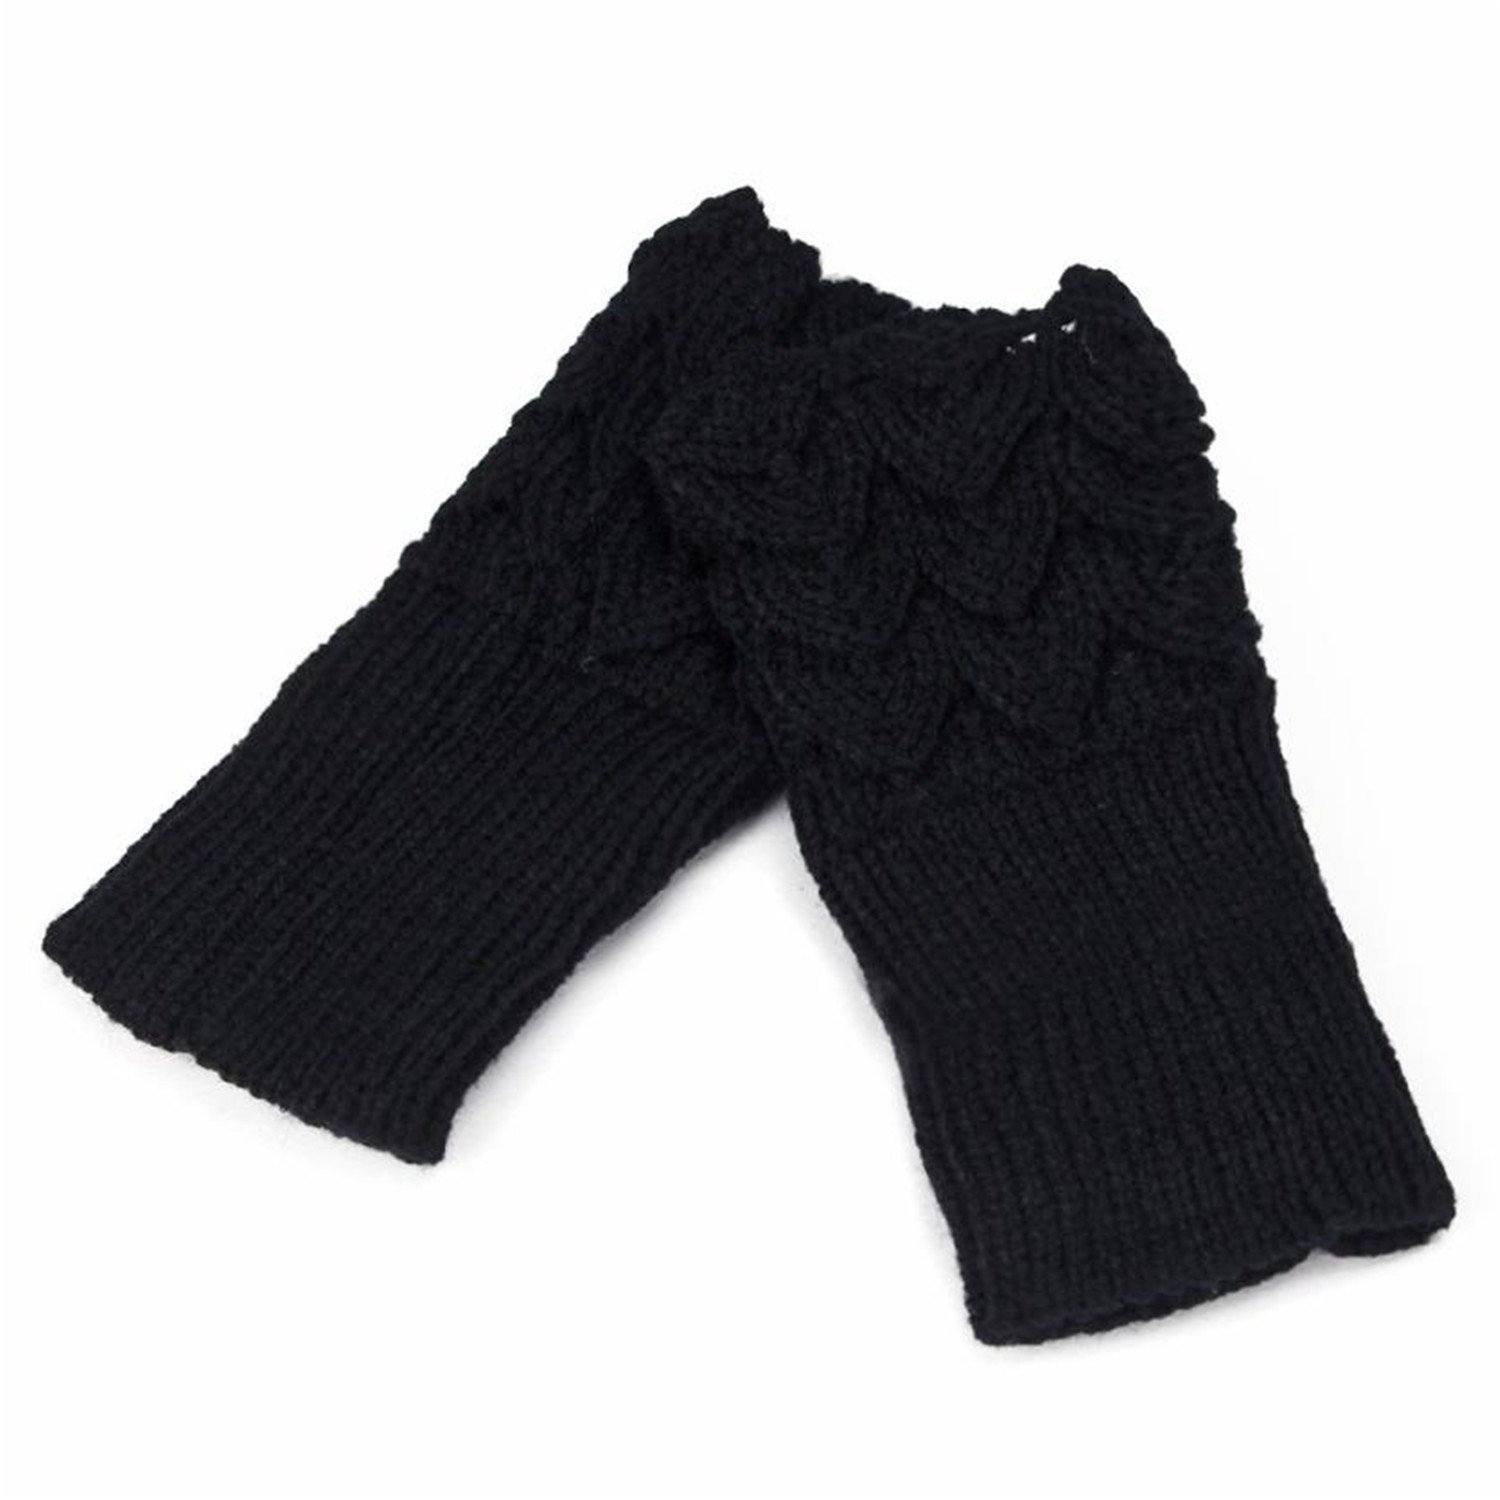 556442cbc99 Cheap Hand Gloves For Women, find Hand Gloves For Women deals on ...